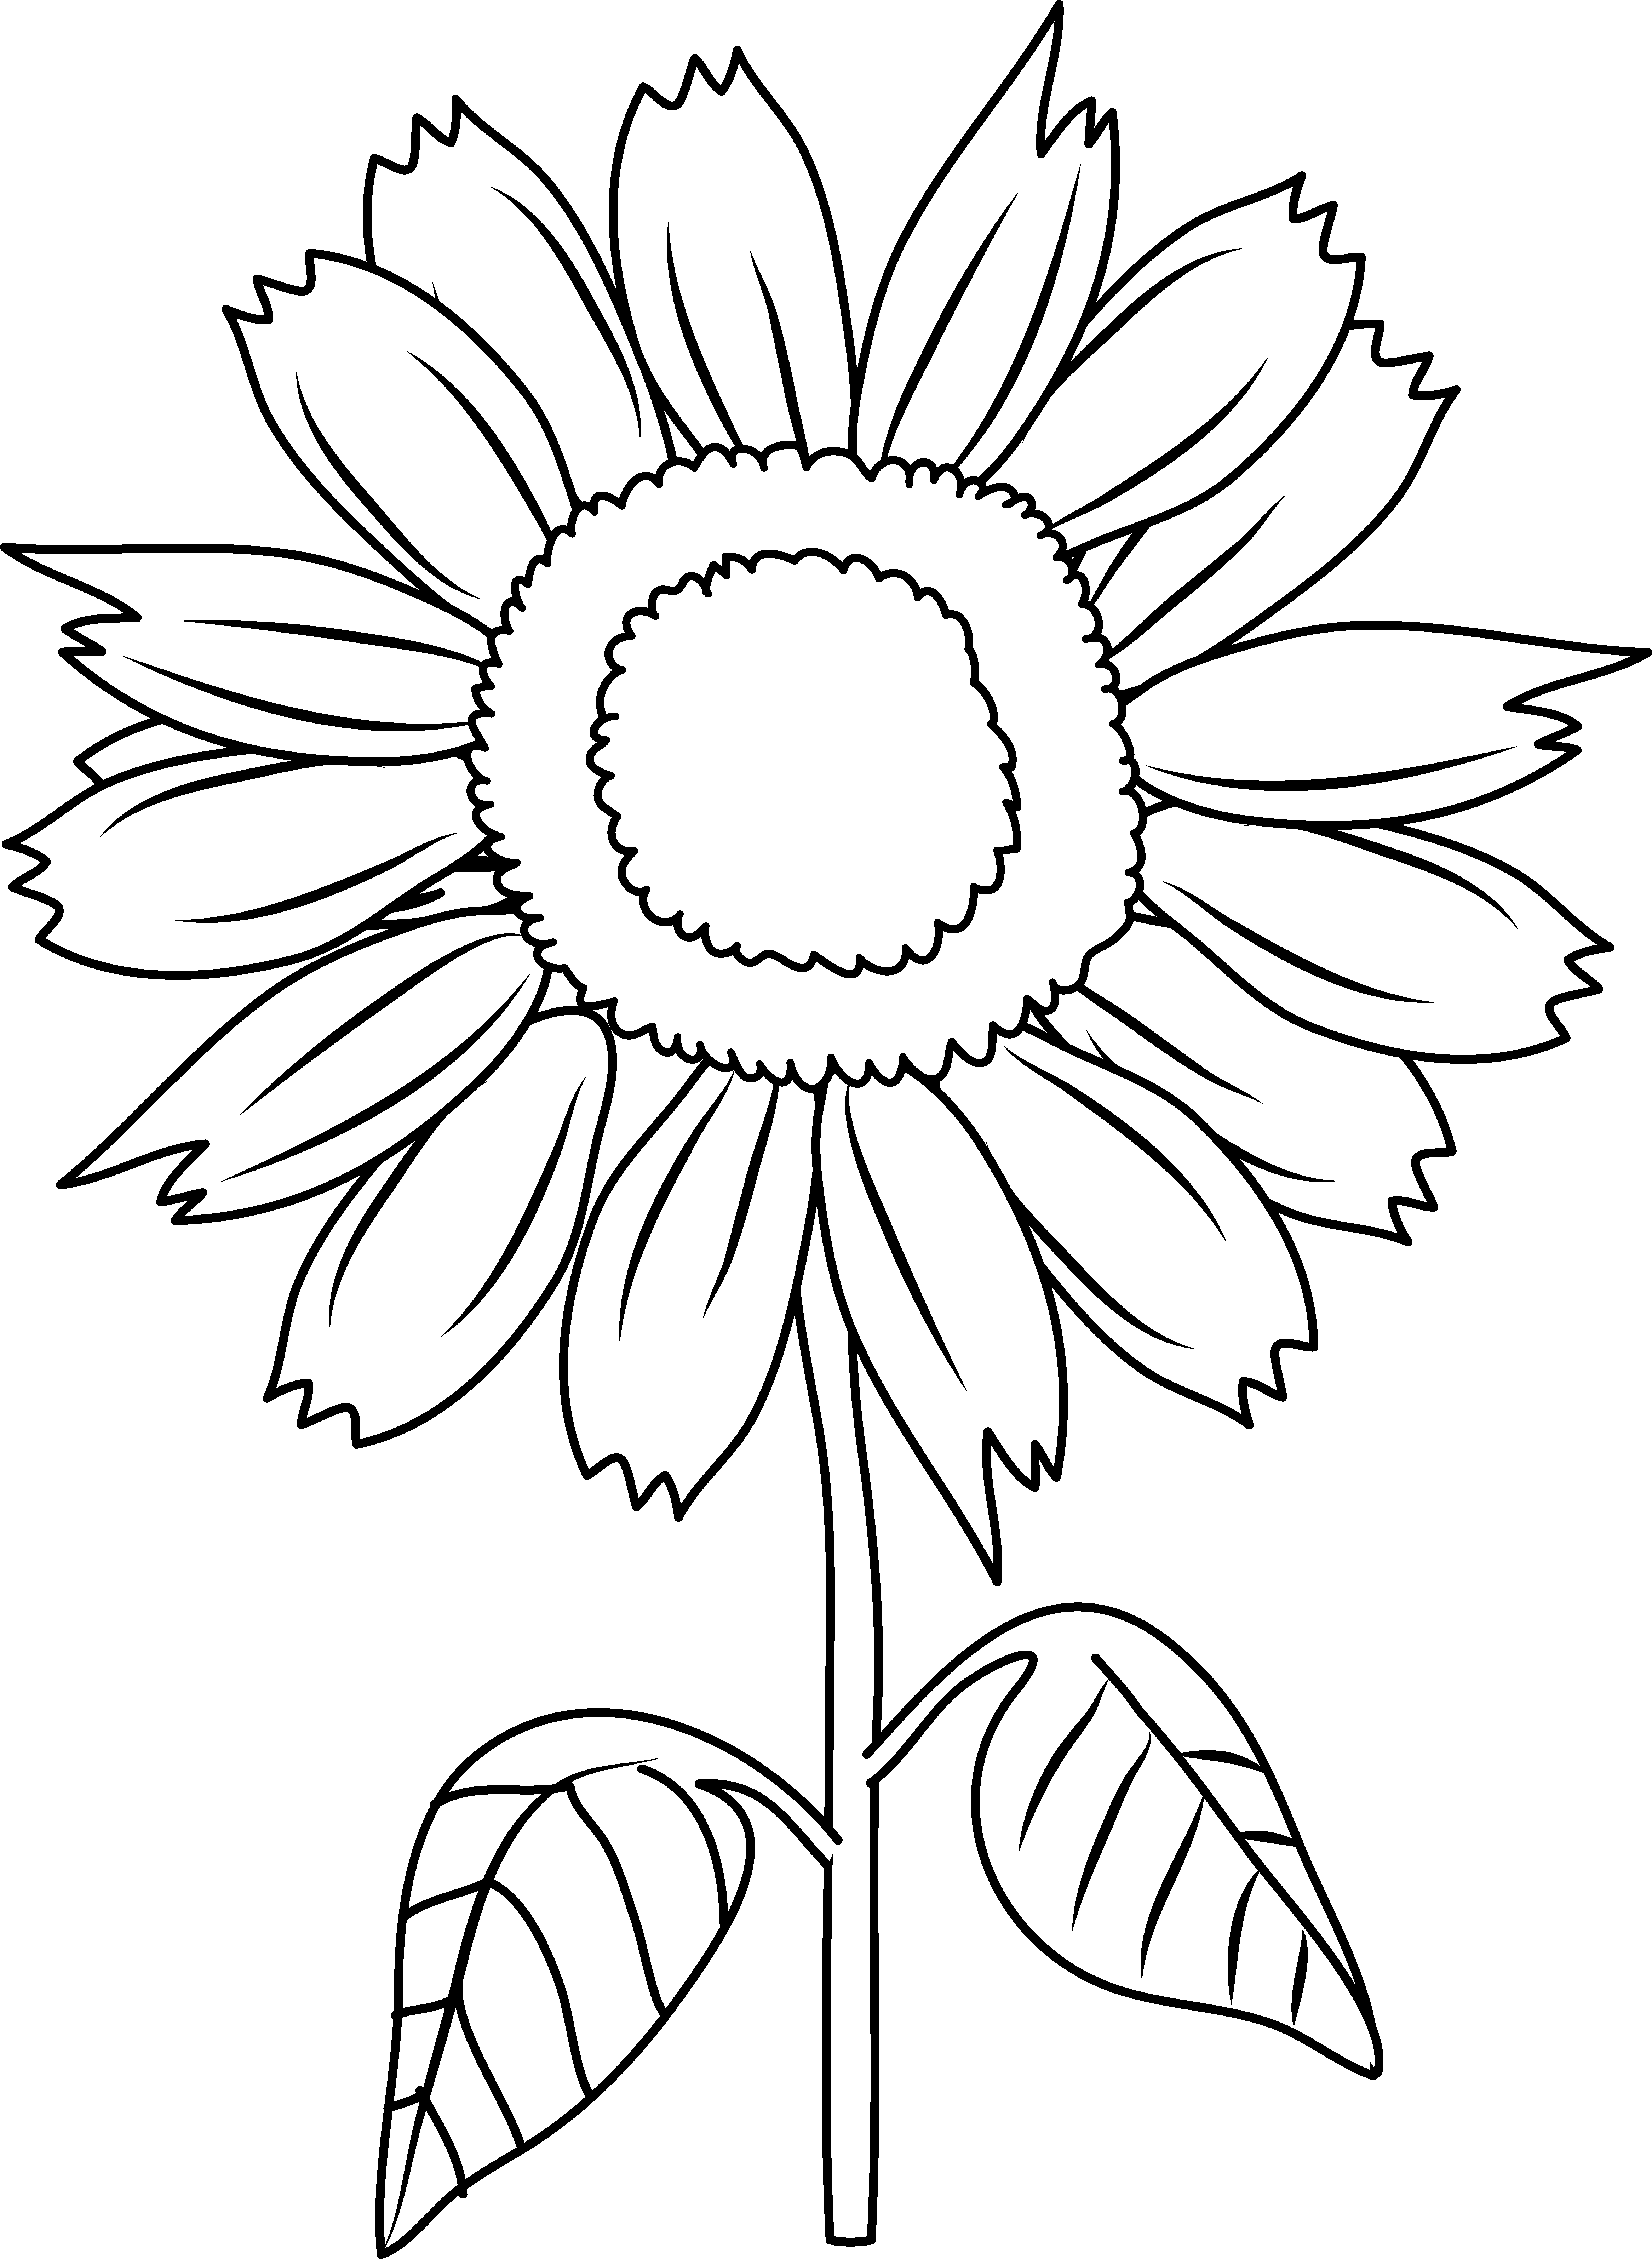 flowers outlines for colouring sunflowers clipart to color 20 free cliparts download colouring for outlines flowers